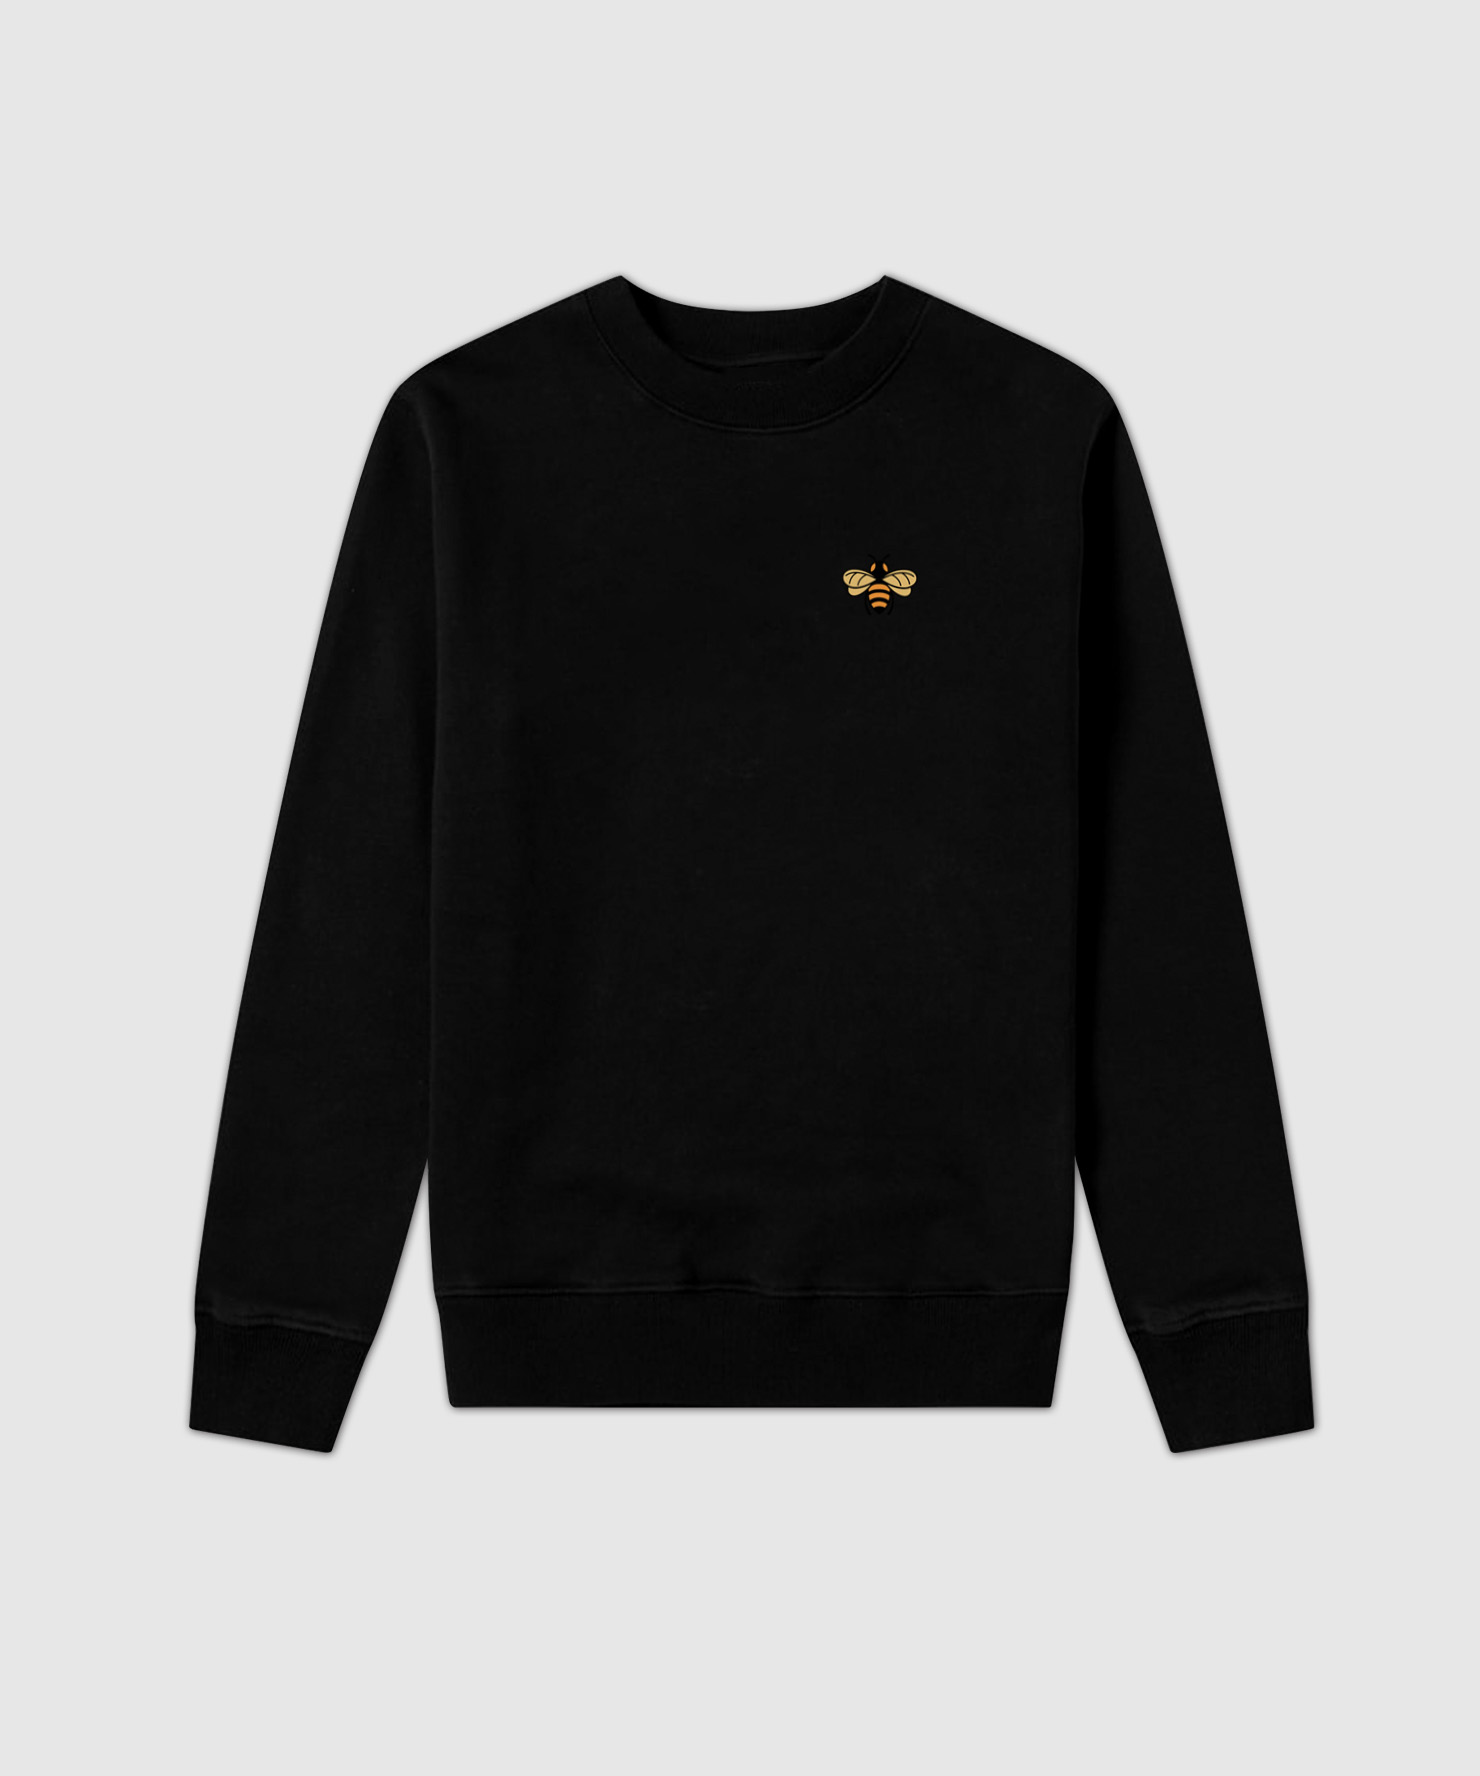 Crew Sweatshirt Bee 4 - COTTON SWEATSHIRT, GAVANICS BEE